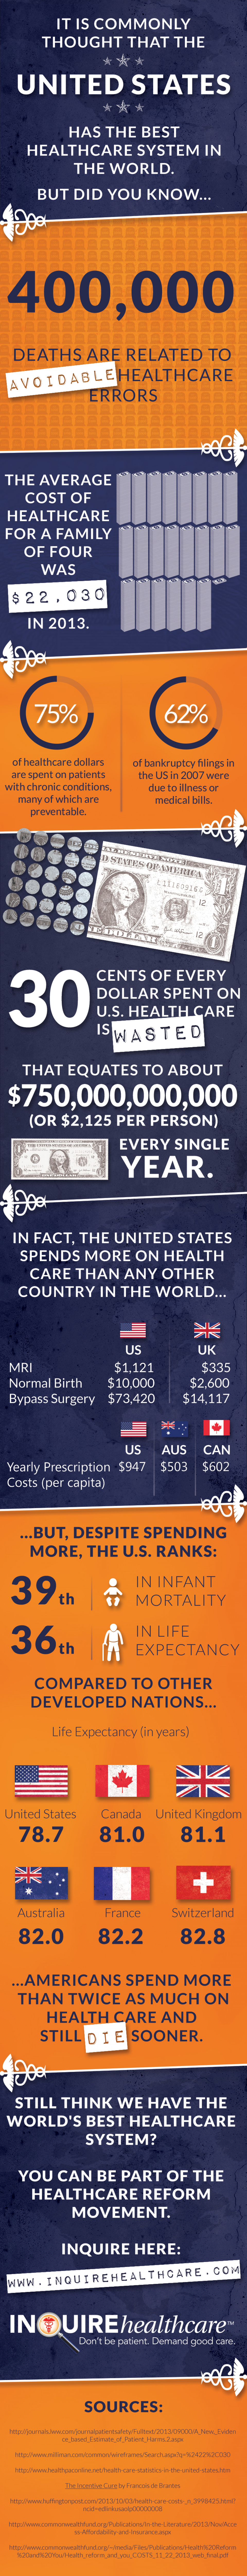 US Health Care: The Numbers Speak For Themselves Infographic